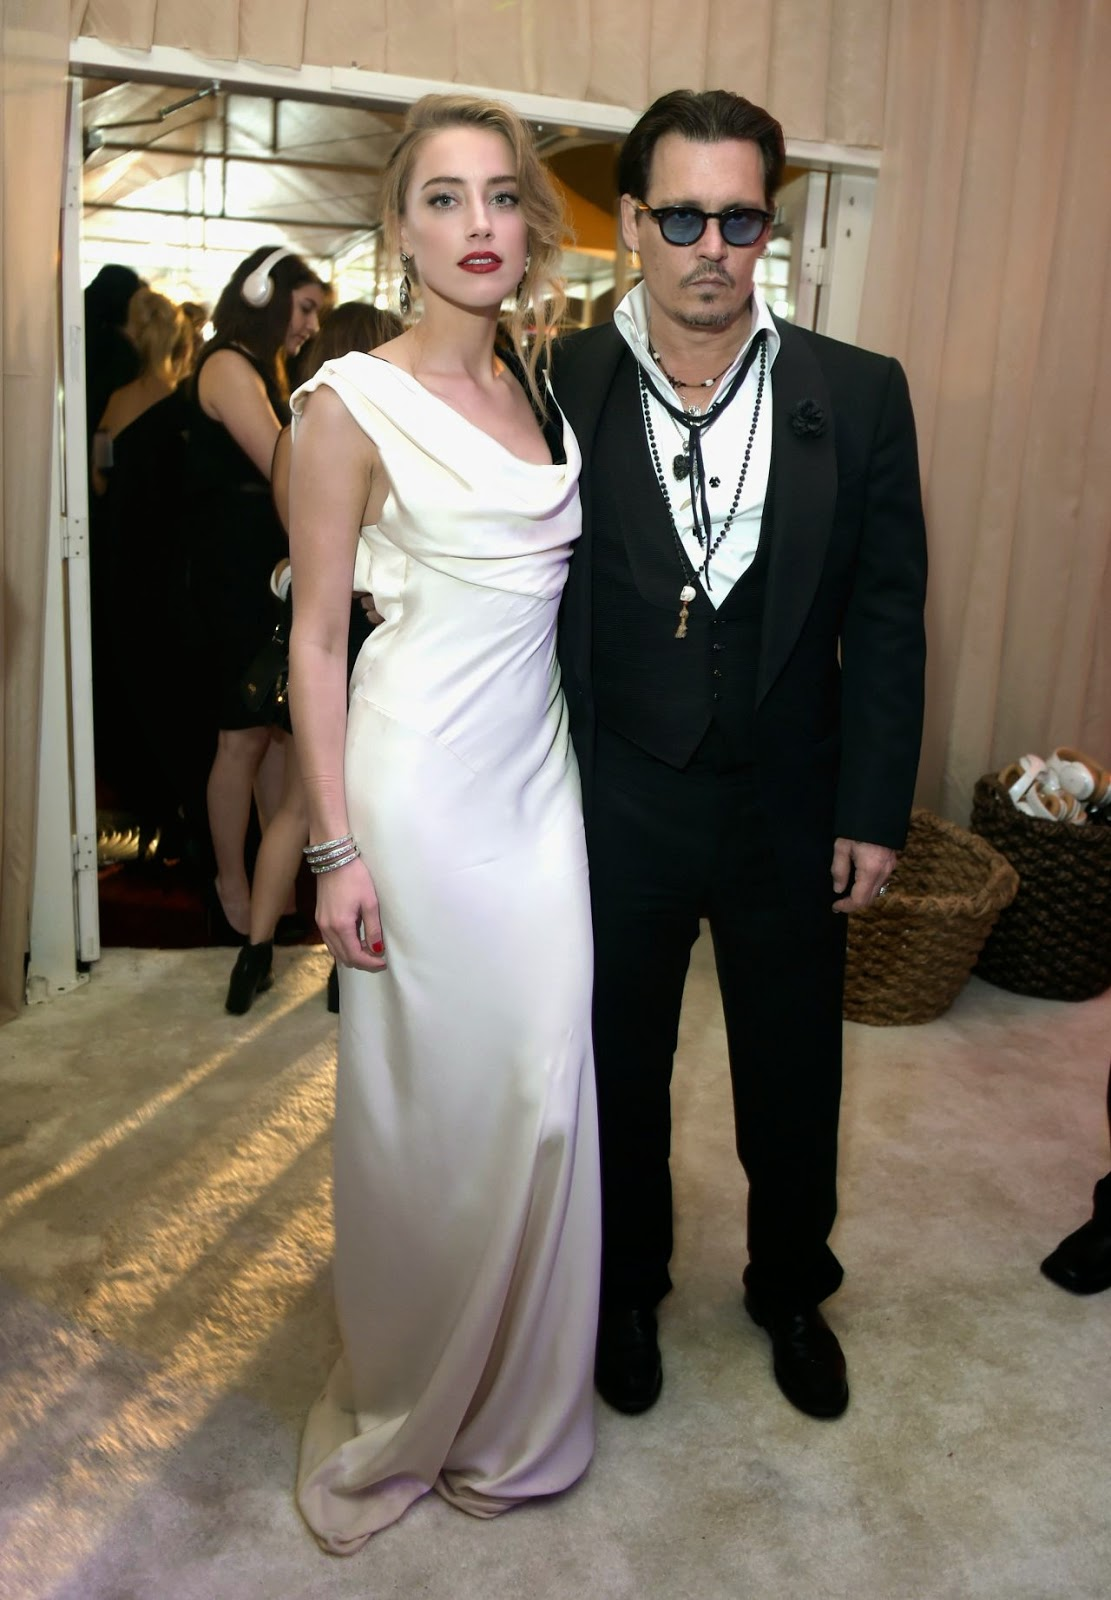 Amber Heard and Johnny Depp arrive in style at the Art of Elysium Annual Heaven Gala in LA